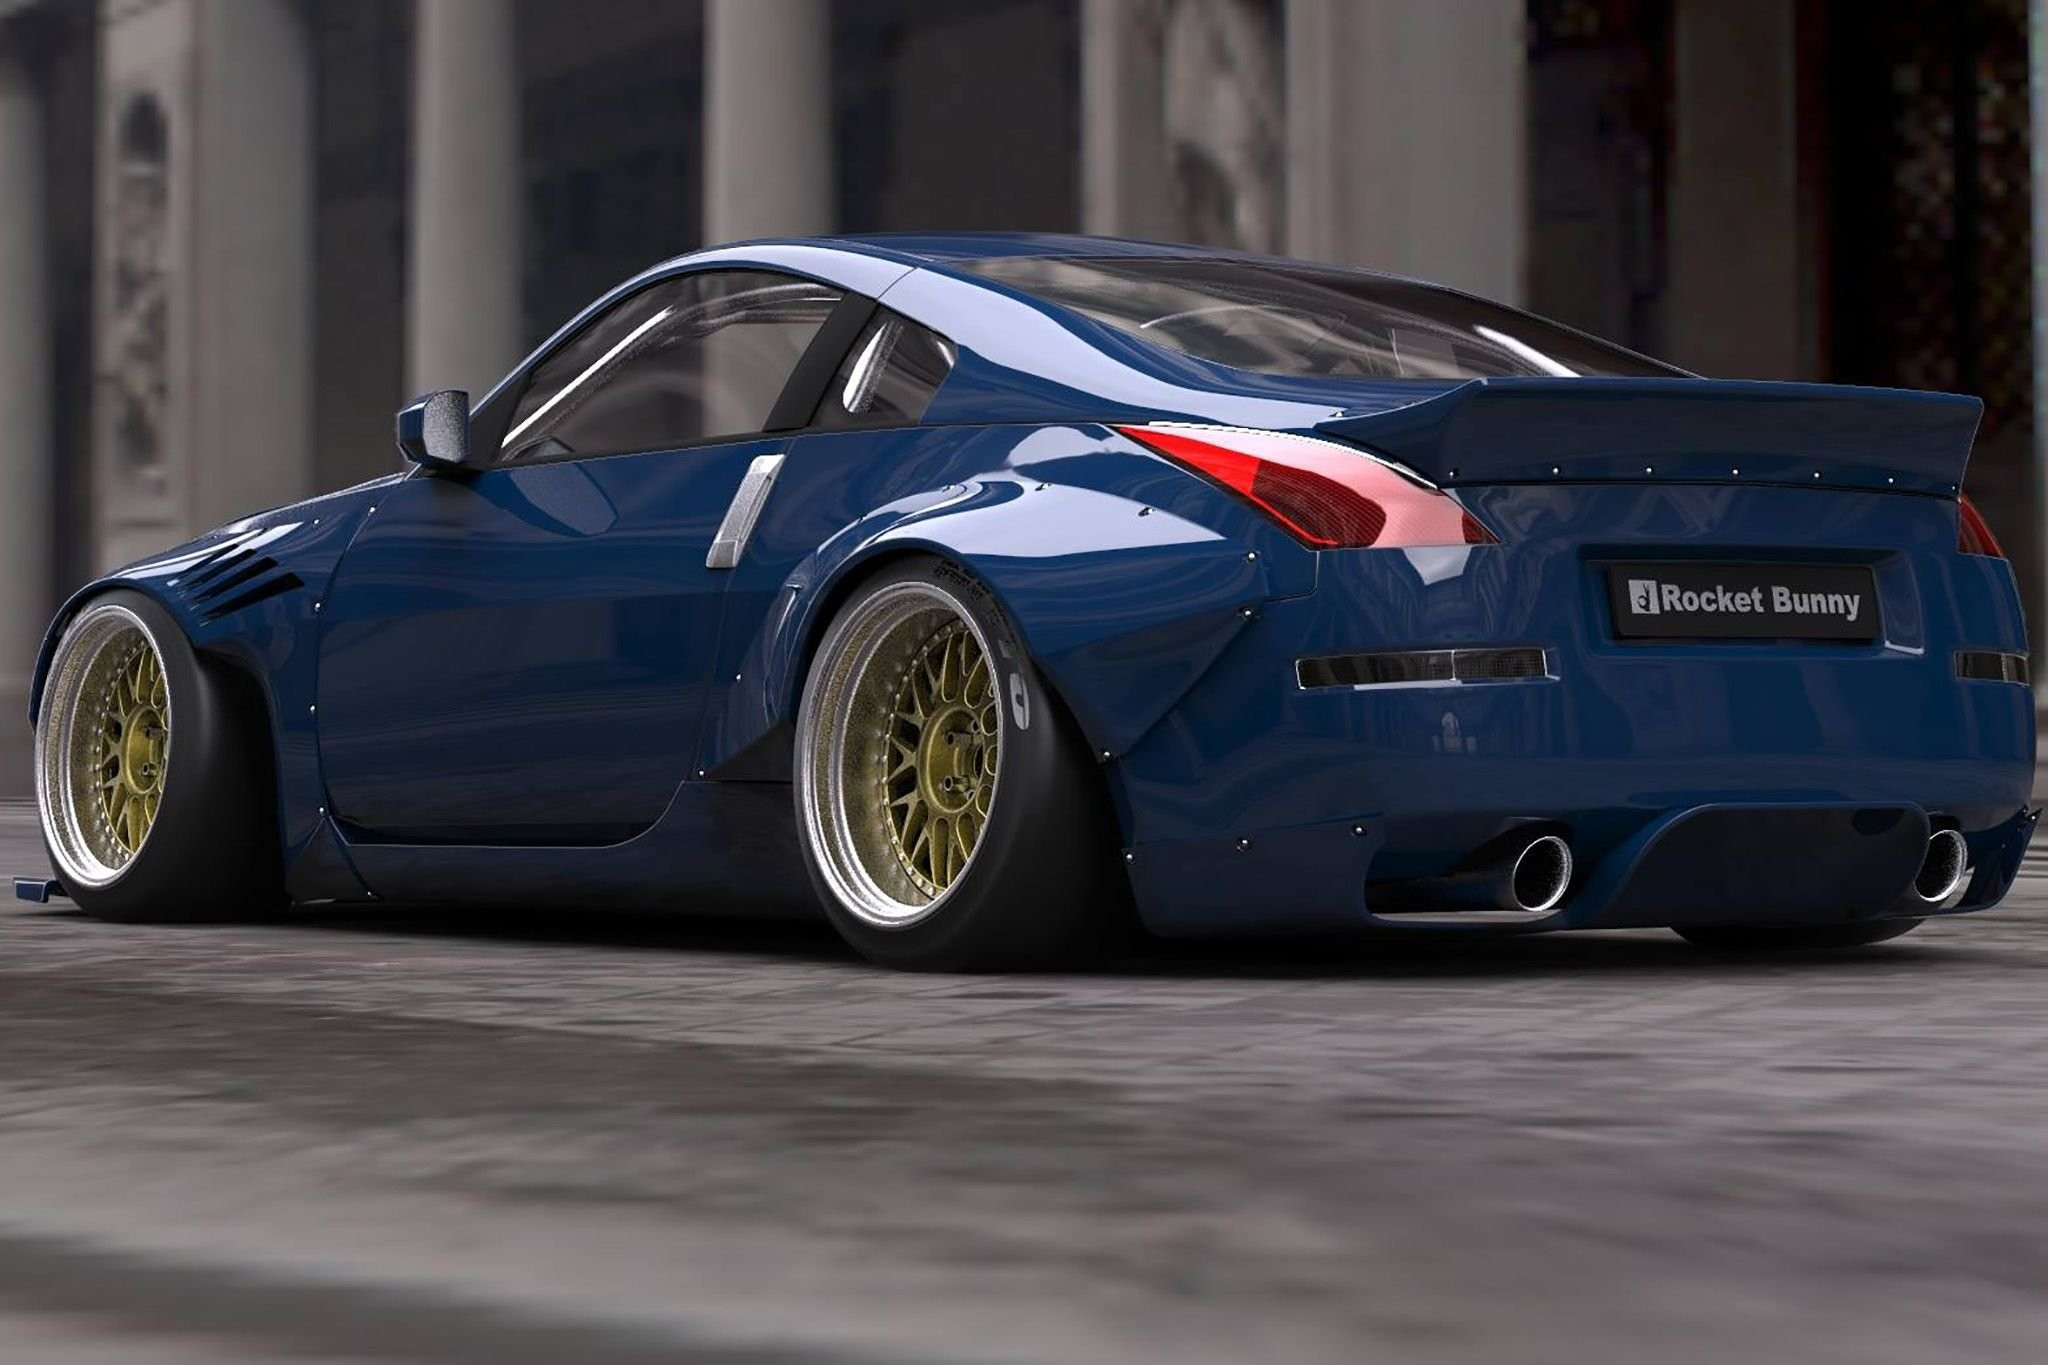 2048x1365 Rocket Bunny 350Z nissan modified bodykit cars wallpaper |  |  669686 | WallpaperUP